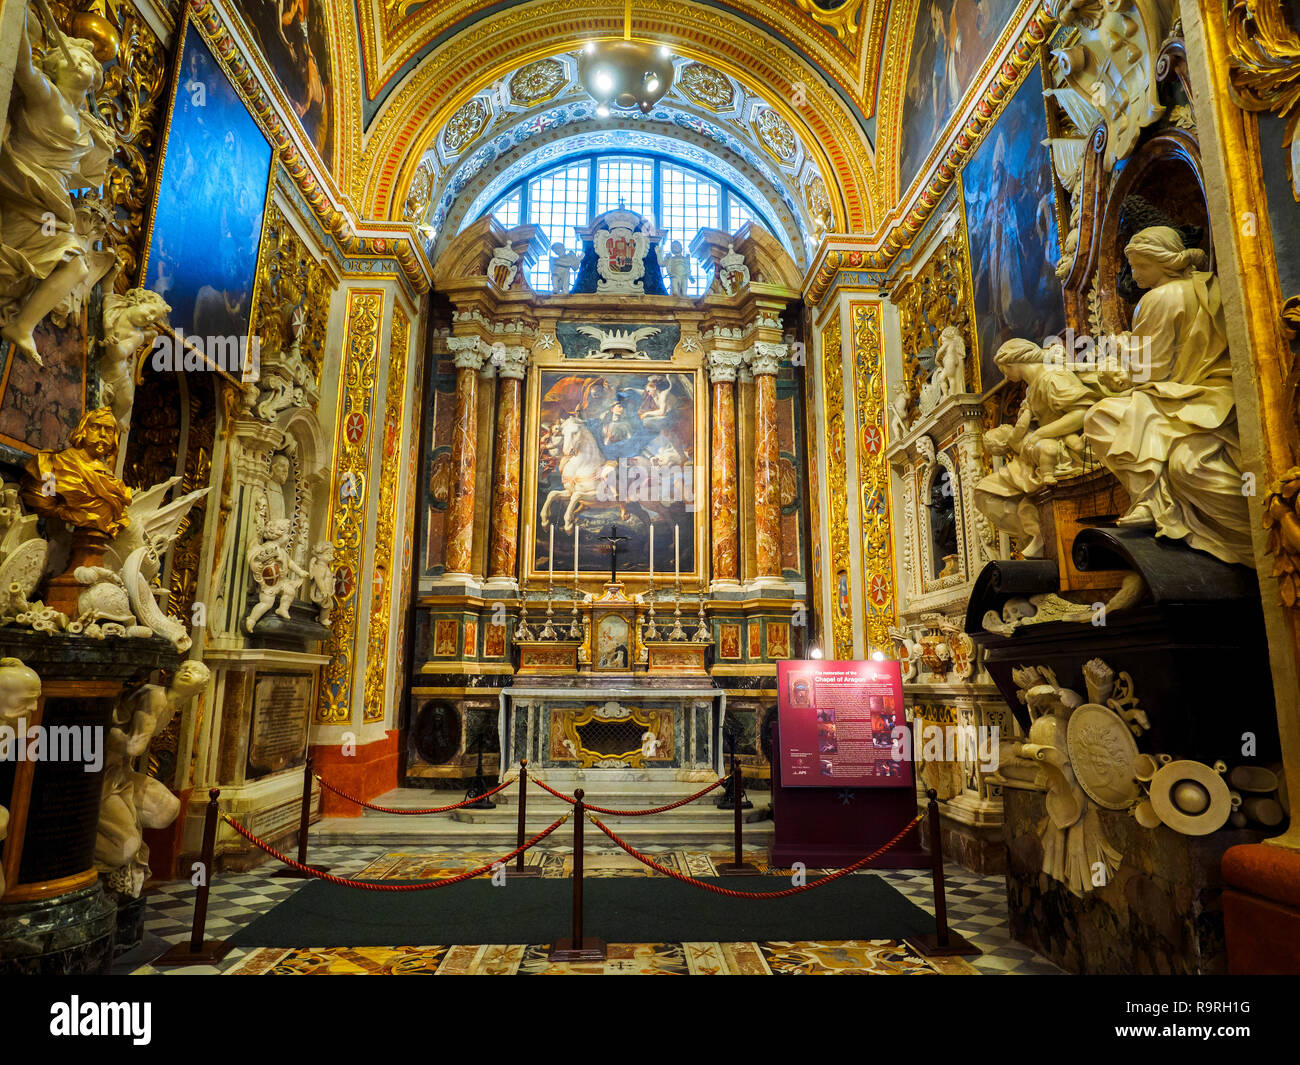 The chapel of the langue of Aragon, Catalonia and Navarre in St John's Cathedral - Valletta, Malta Stock Photo